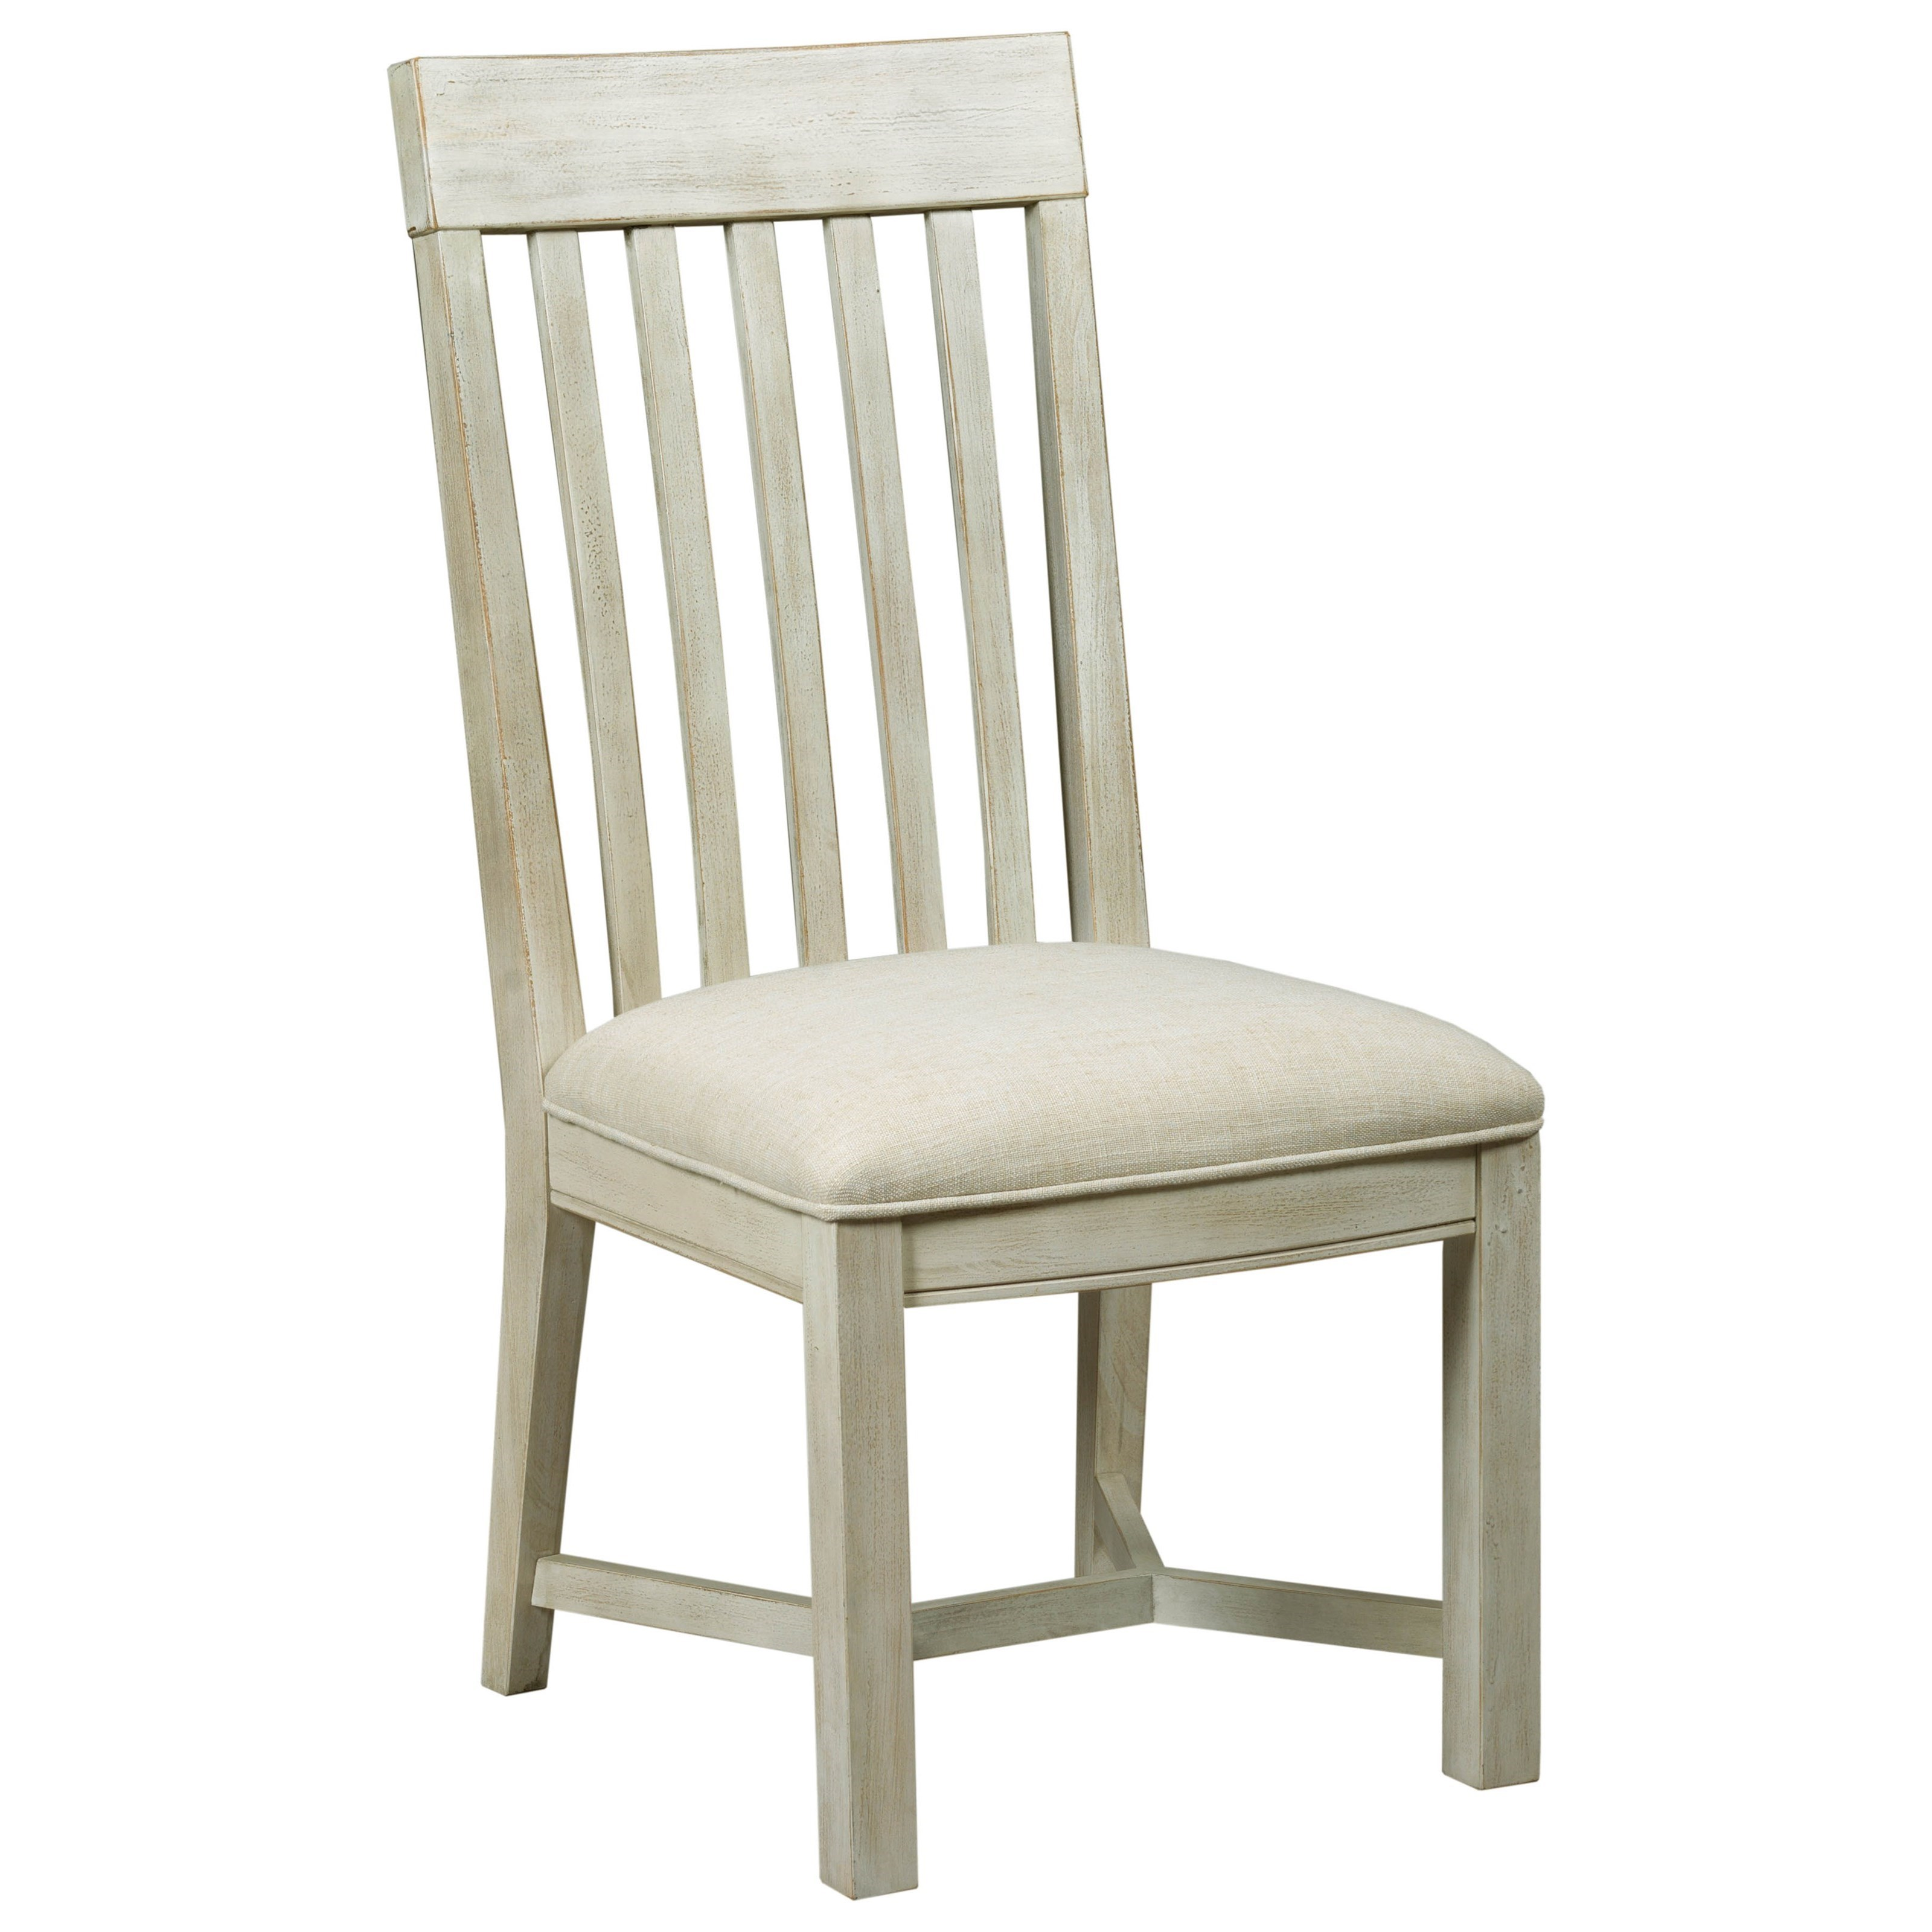 Litchfield Side Chair by American Drew at Johnny Janosik